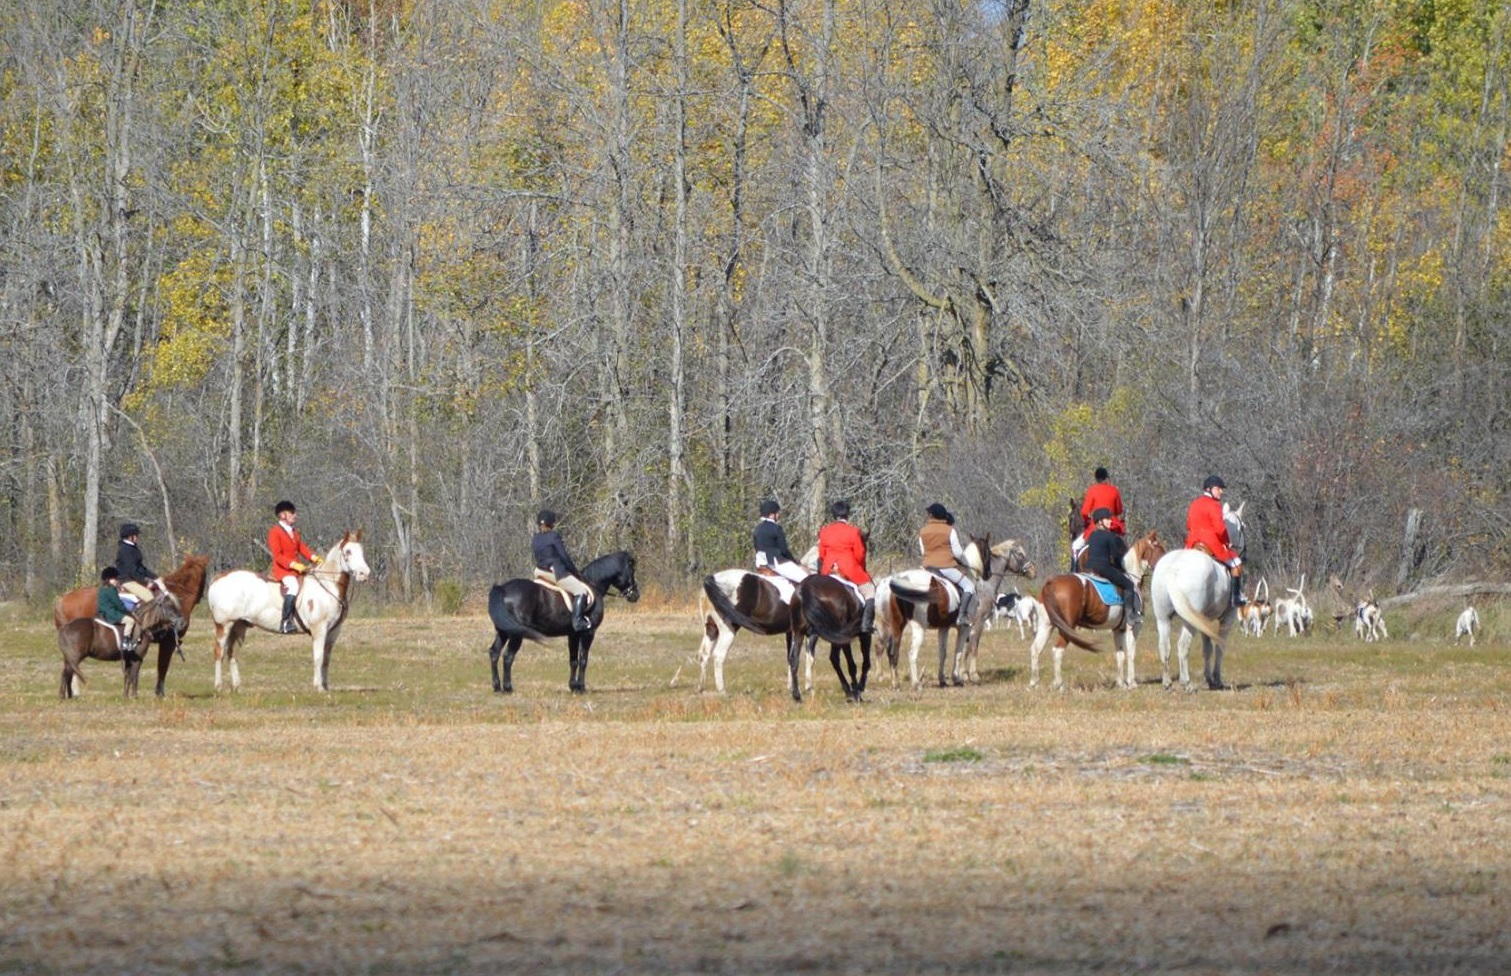 ottawa valley hunt riding horses in fall